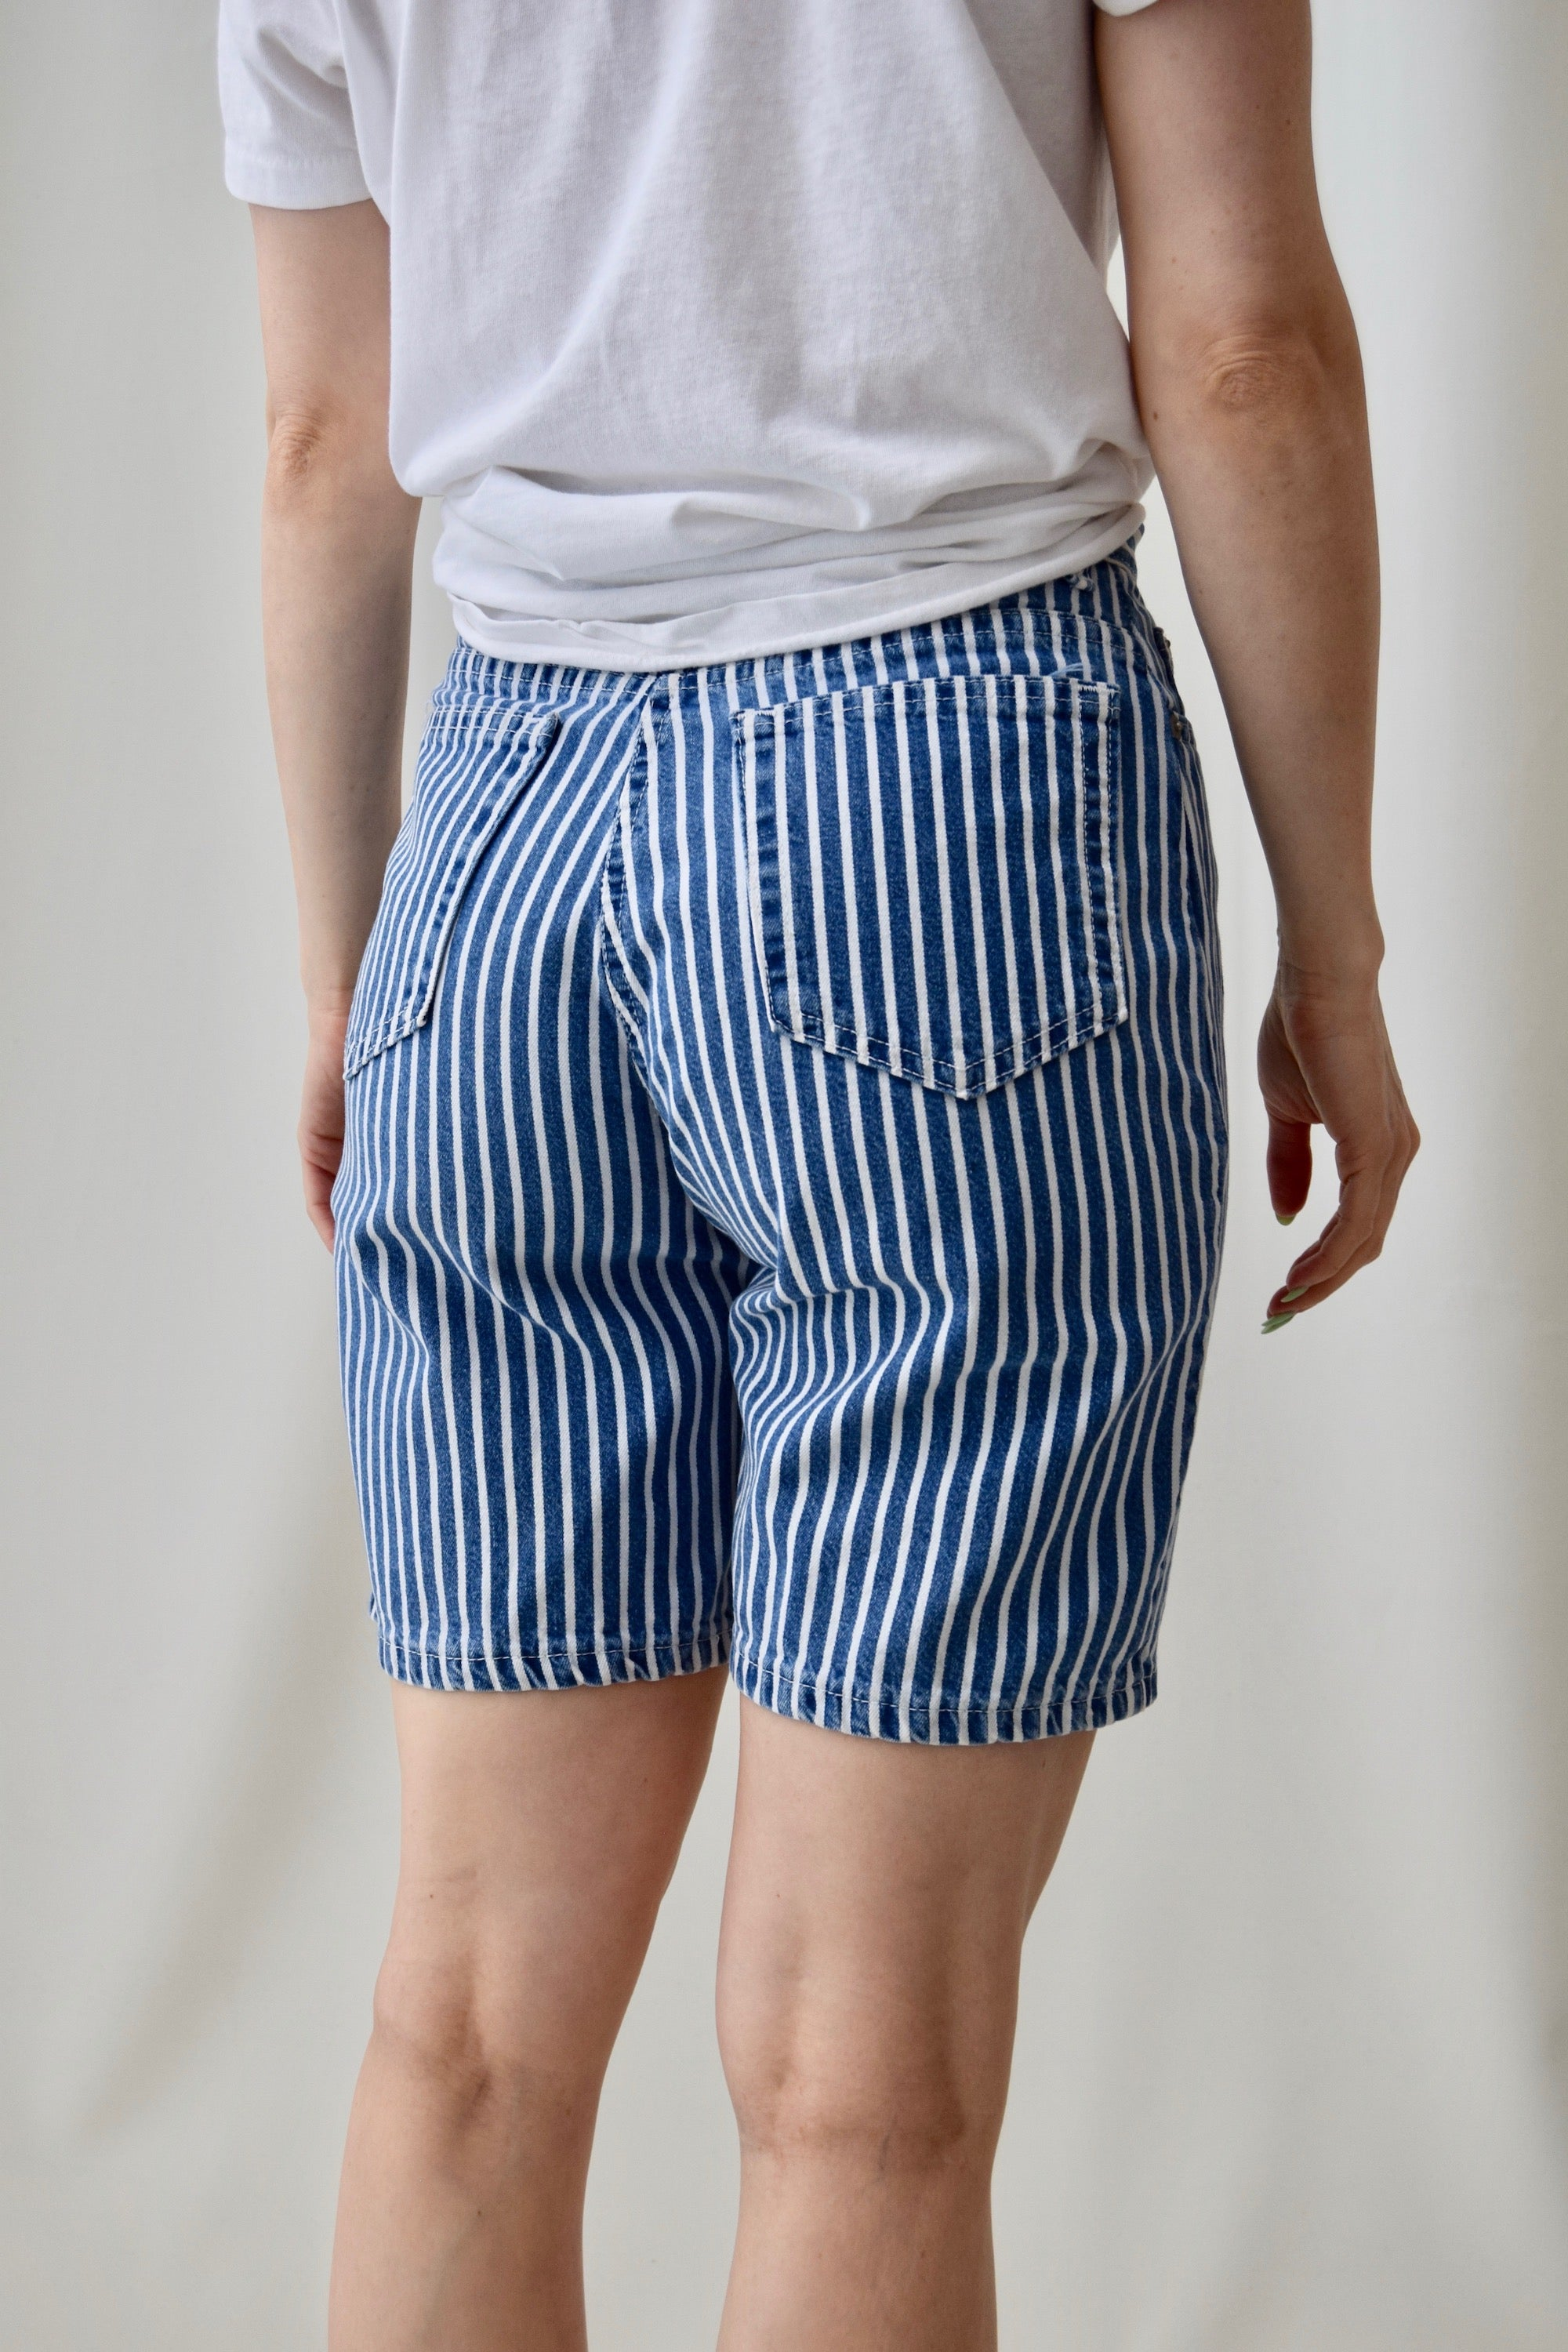 Hickory Striped Bermuda Shorts